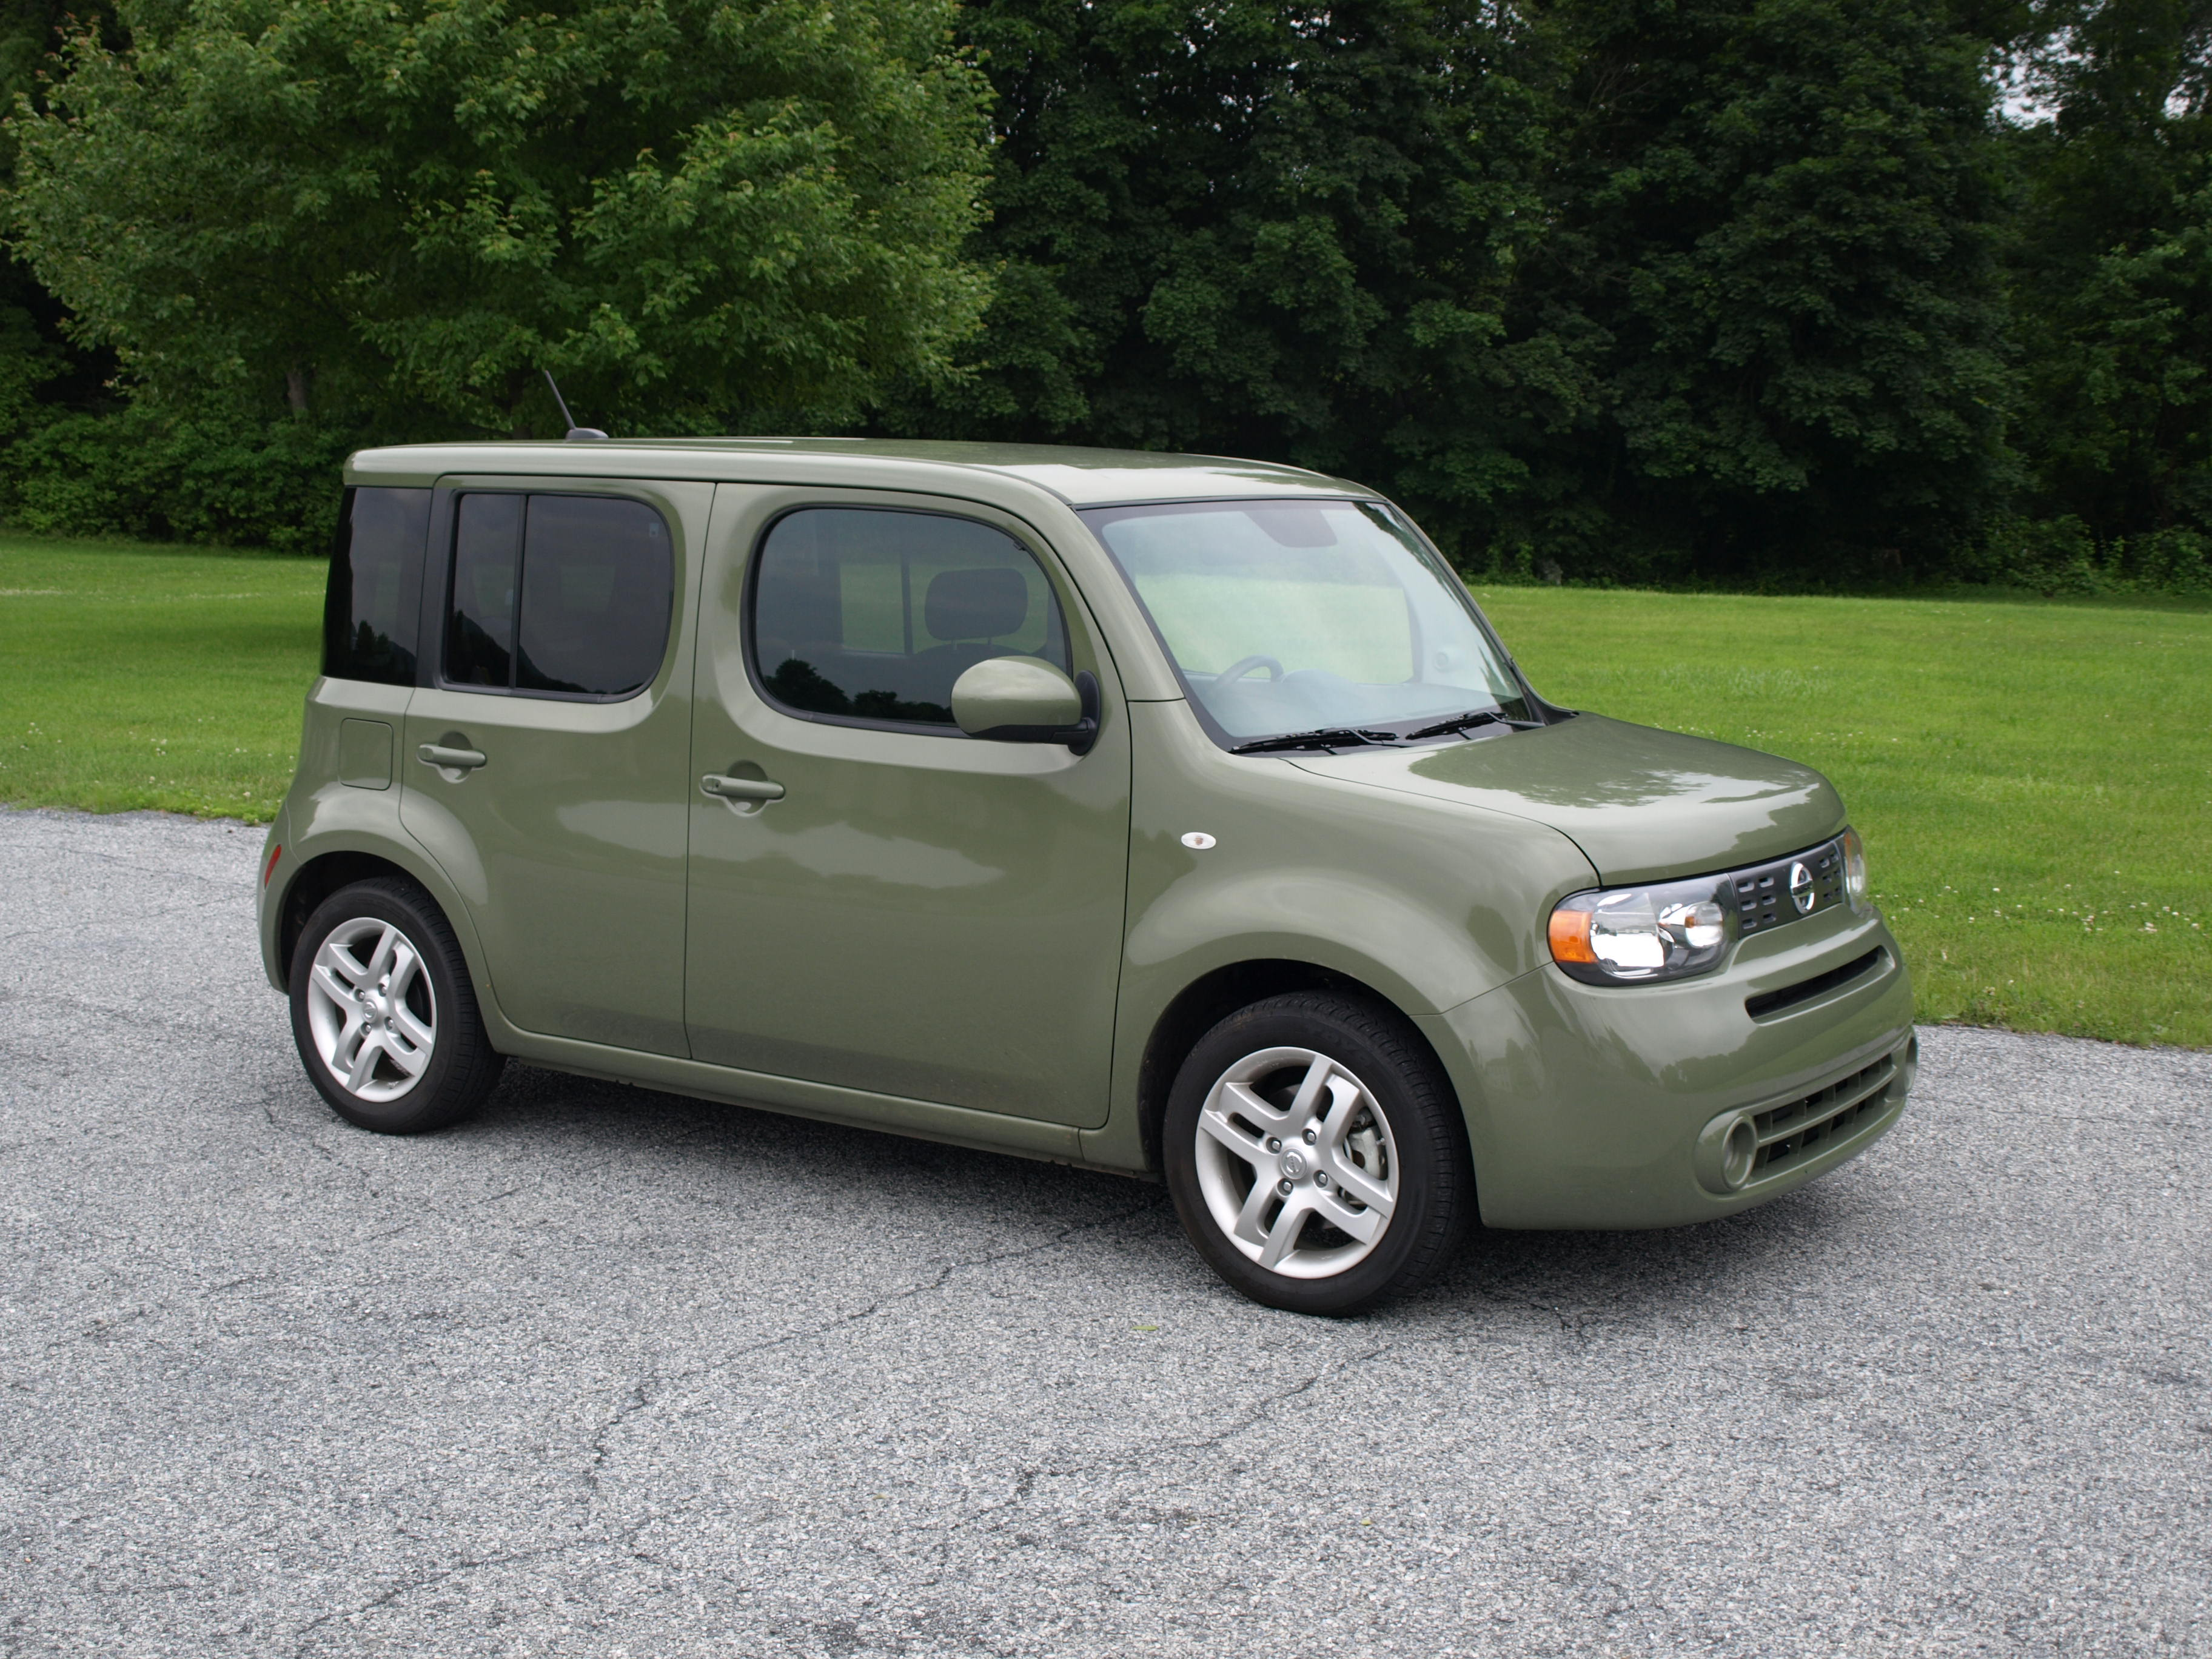 nissan cube iii 2009 images #14